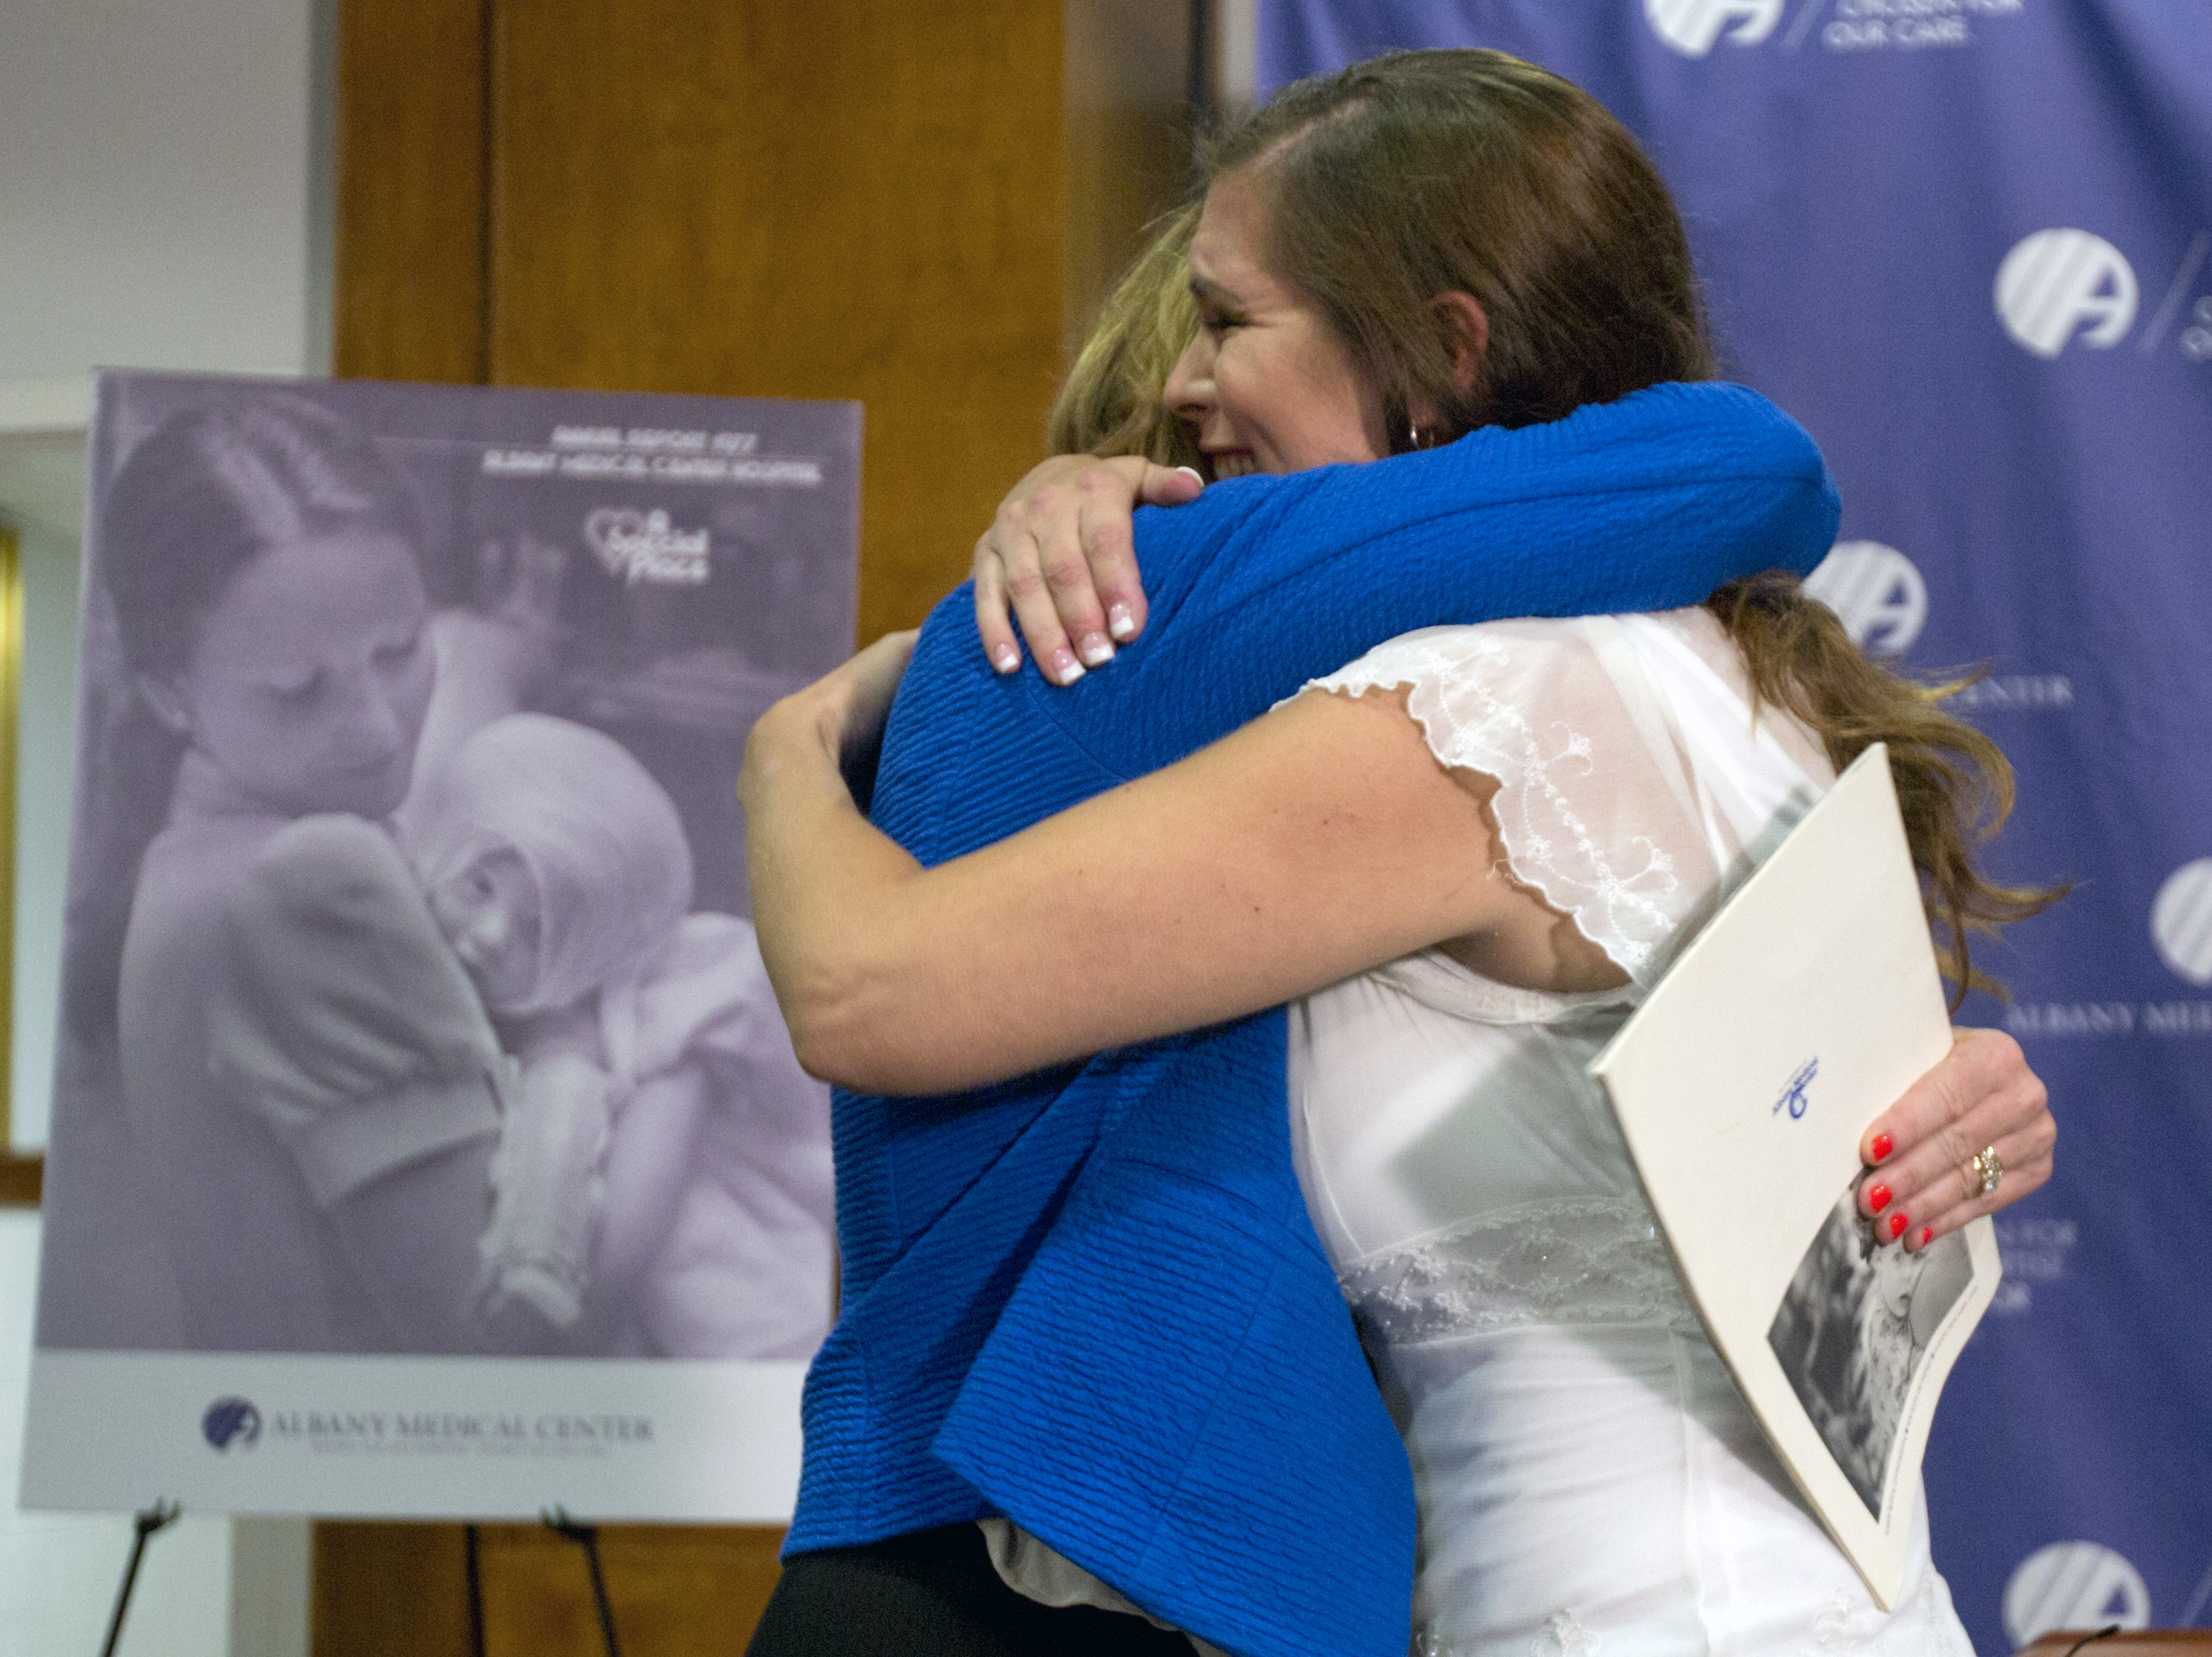 Nurse Susan Berger (L) and Amanda Scarpinati hug during a news conference at Albany Medical Center in Albany, N.Y. on Sept. 29, 2015.